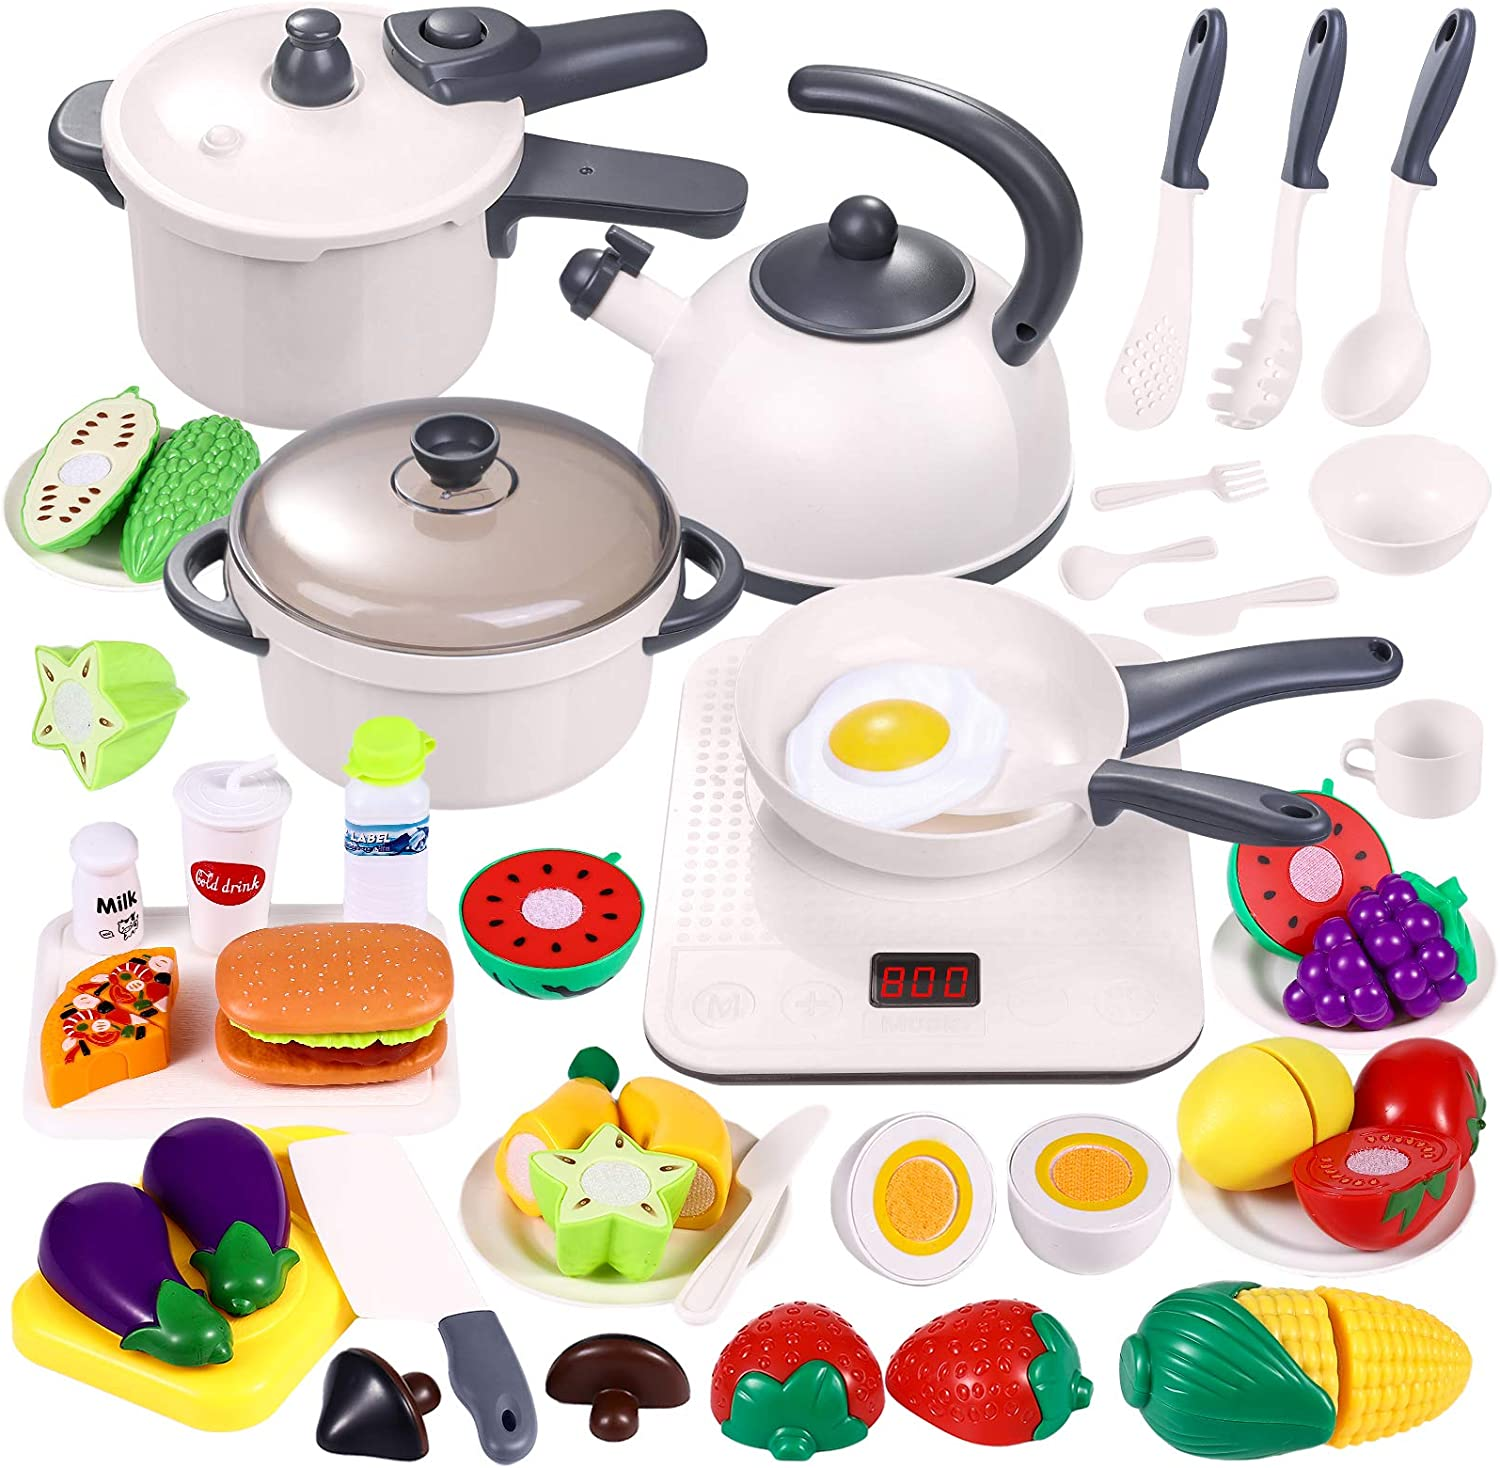 Chef Hat Apron Kids Kitchen Toy with Stainless Steel Steamer Cooking Utensils Foods Cookware with Dish and Durable Storage Box for Kids Dumplings Steamed Bread,Crab